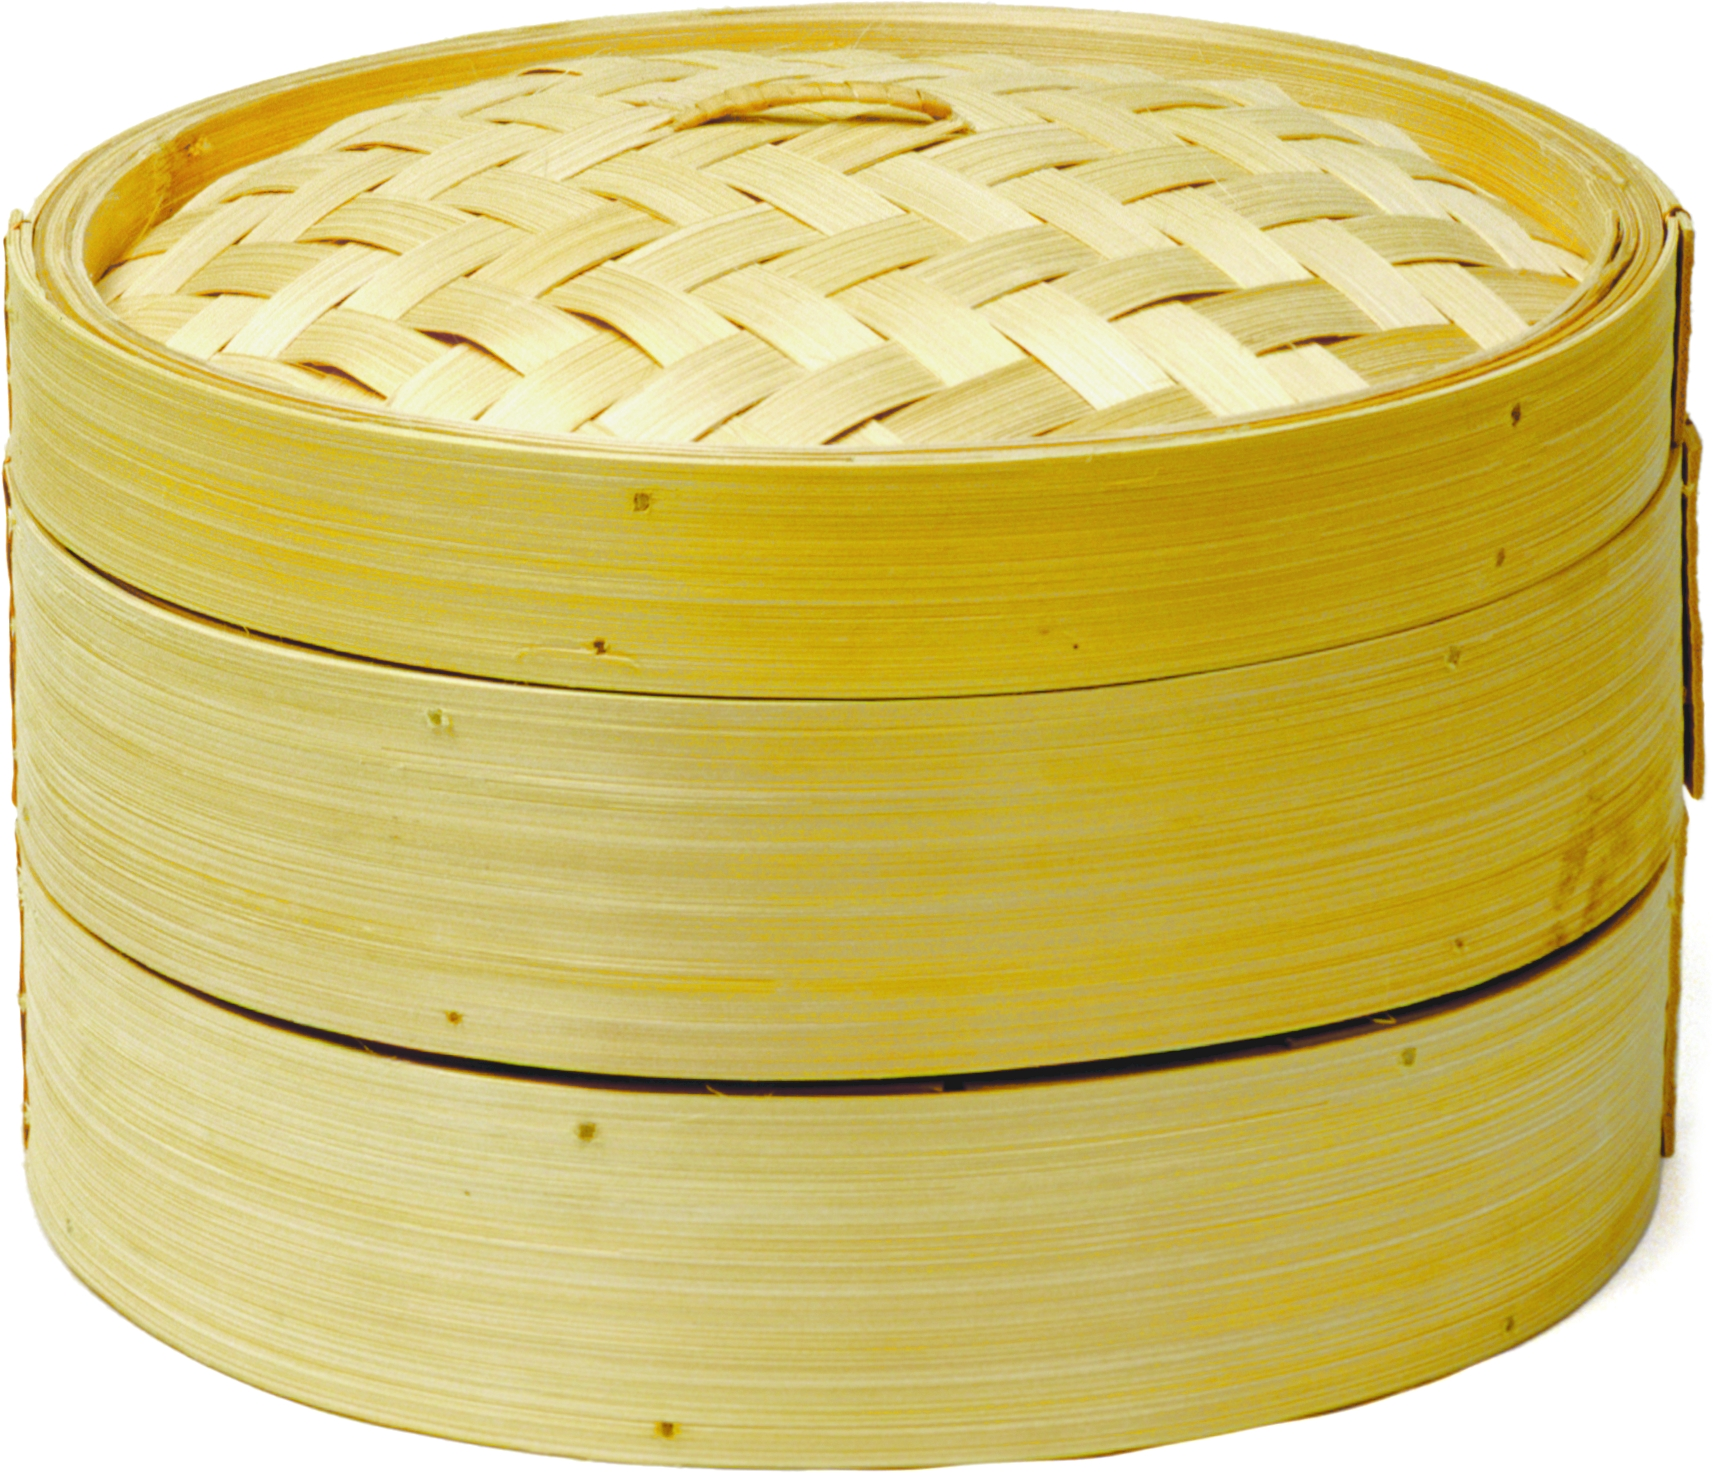 Norpro Two Tier Natural Bamboo Steamer with Lid